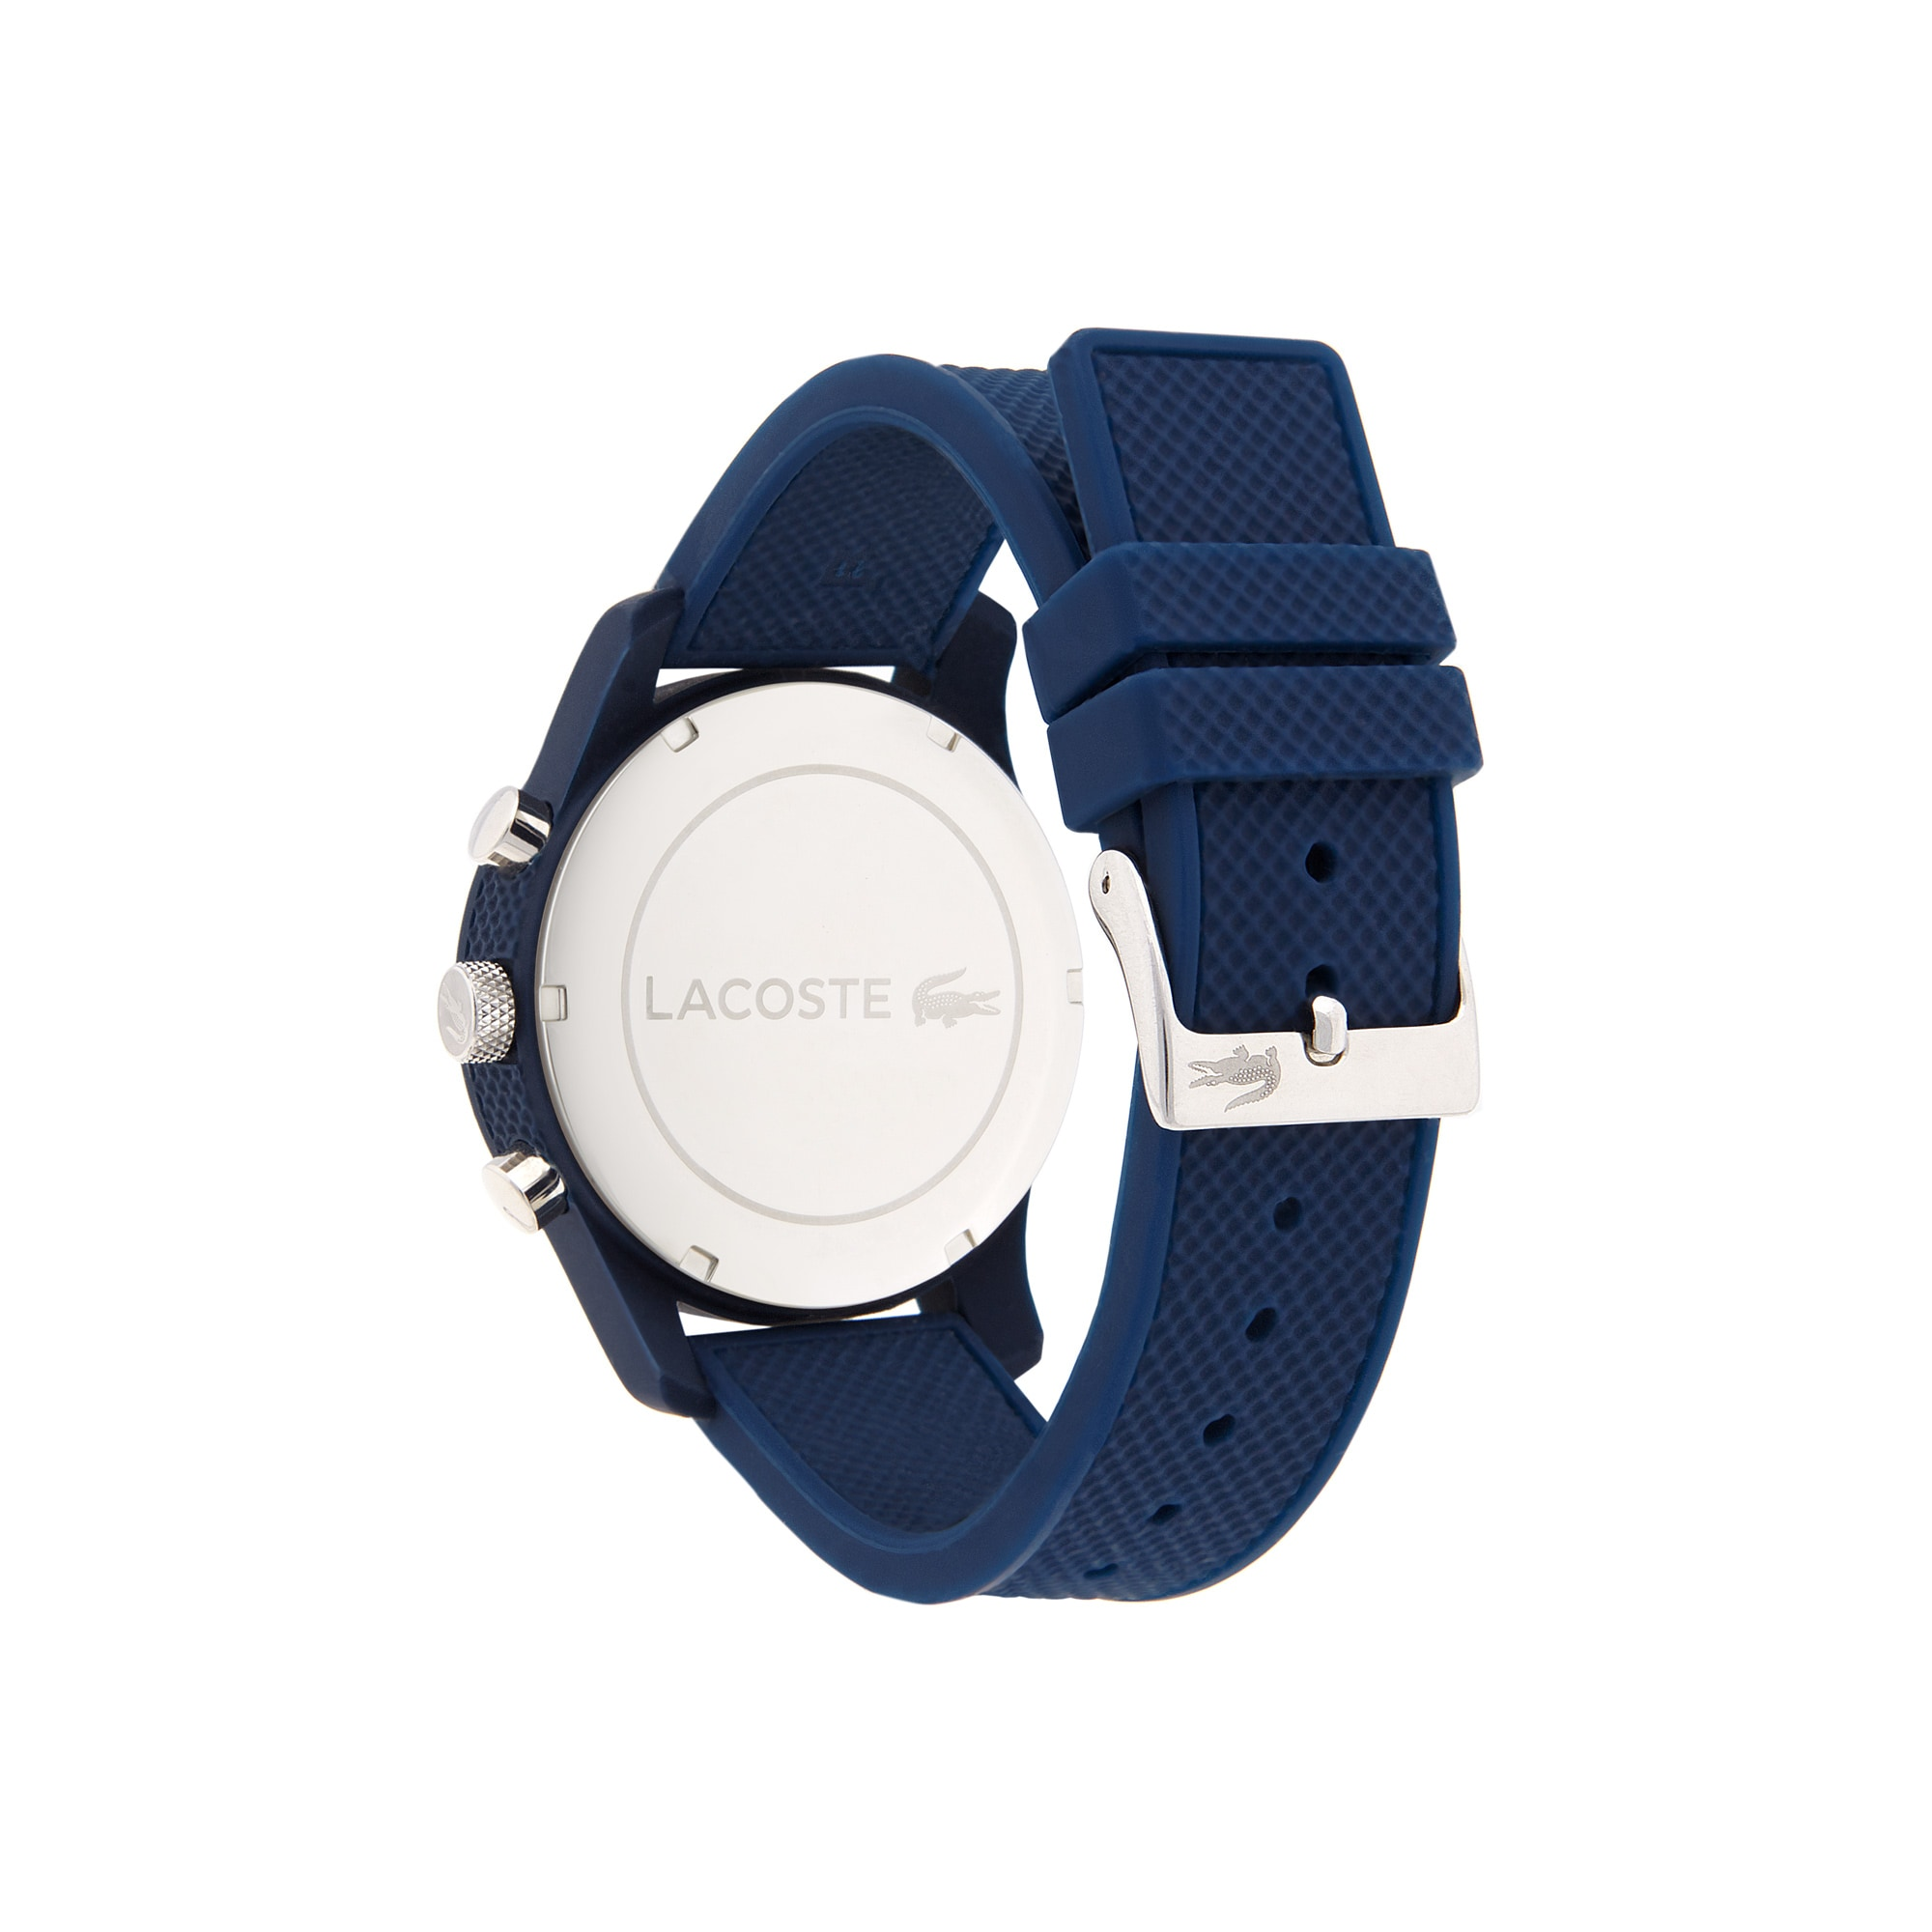 Polo Polo Lacoste Shirt Lacoste Montre 2010824 Shirt 2010824 fyvIYgb76